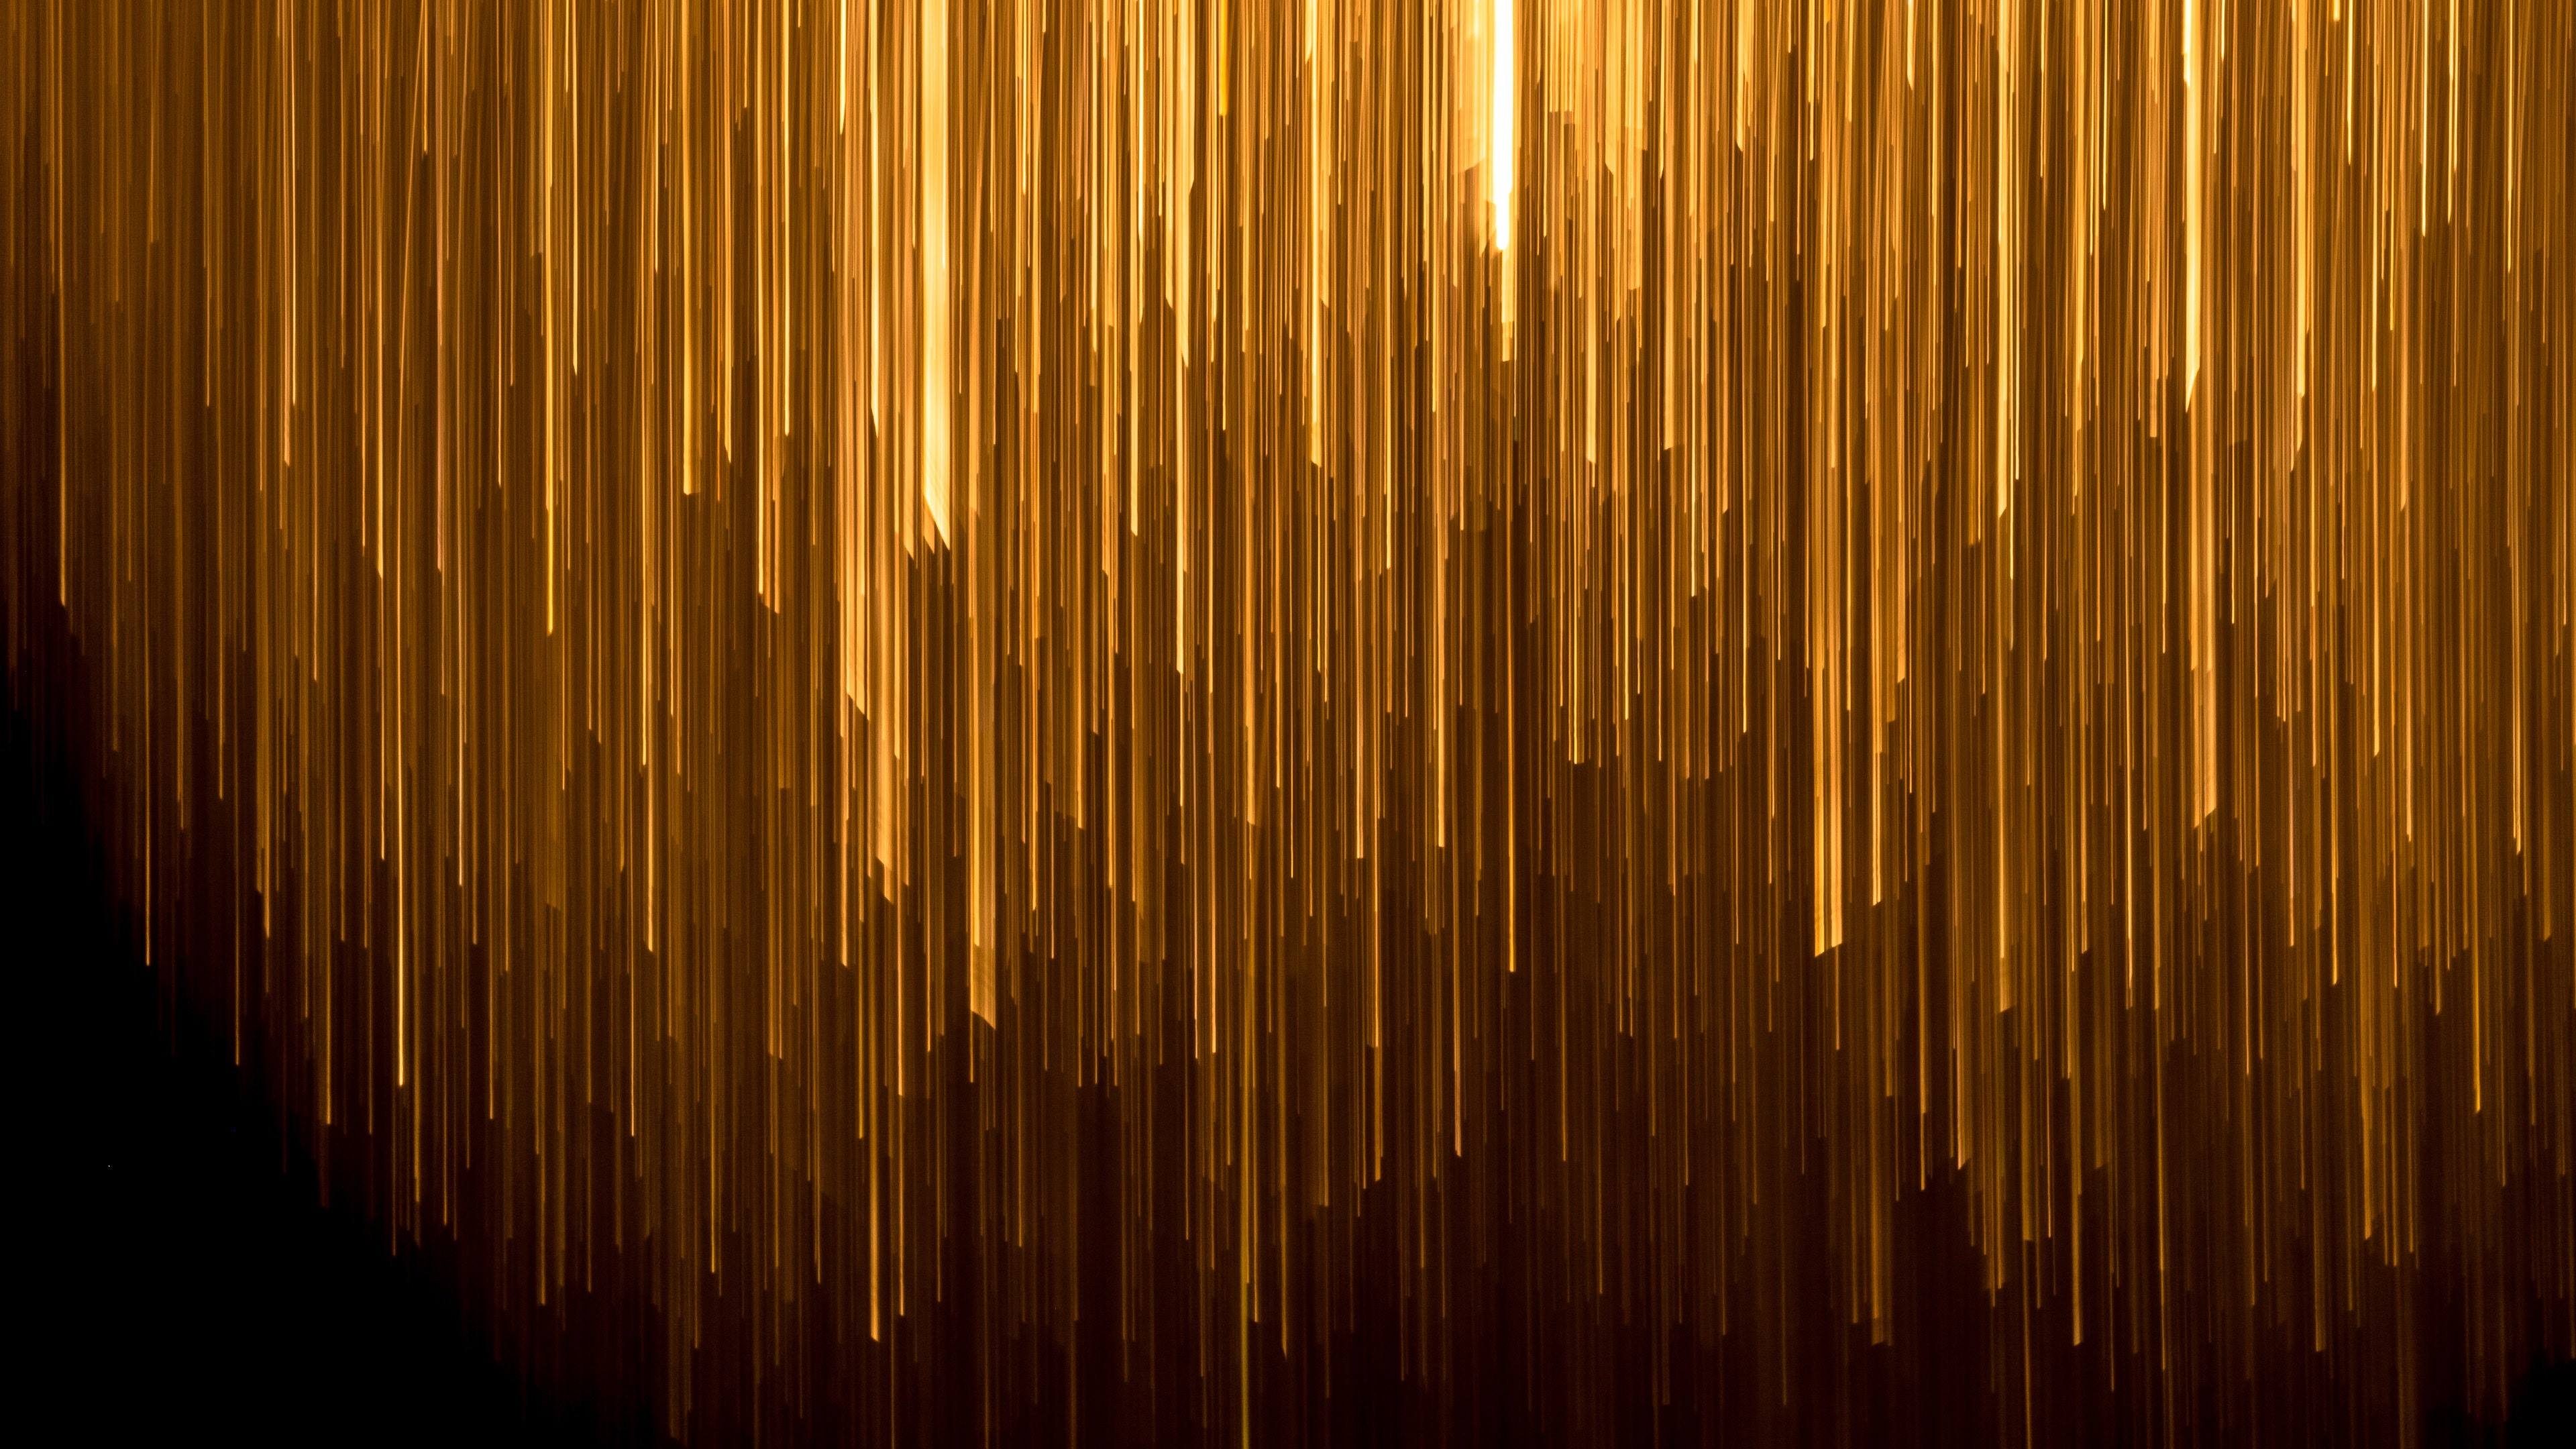 Gold 4k Wallpaper Posted By Christopher Johnson